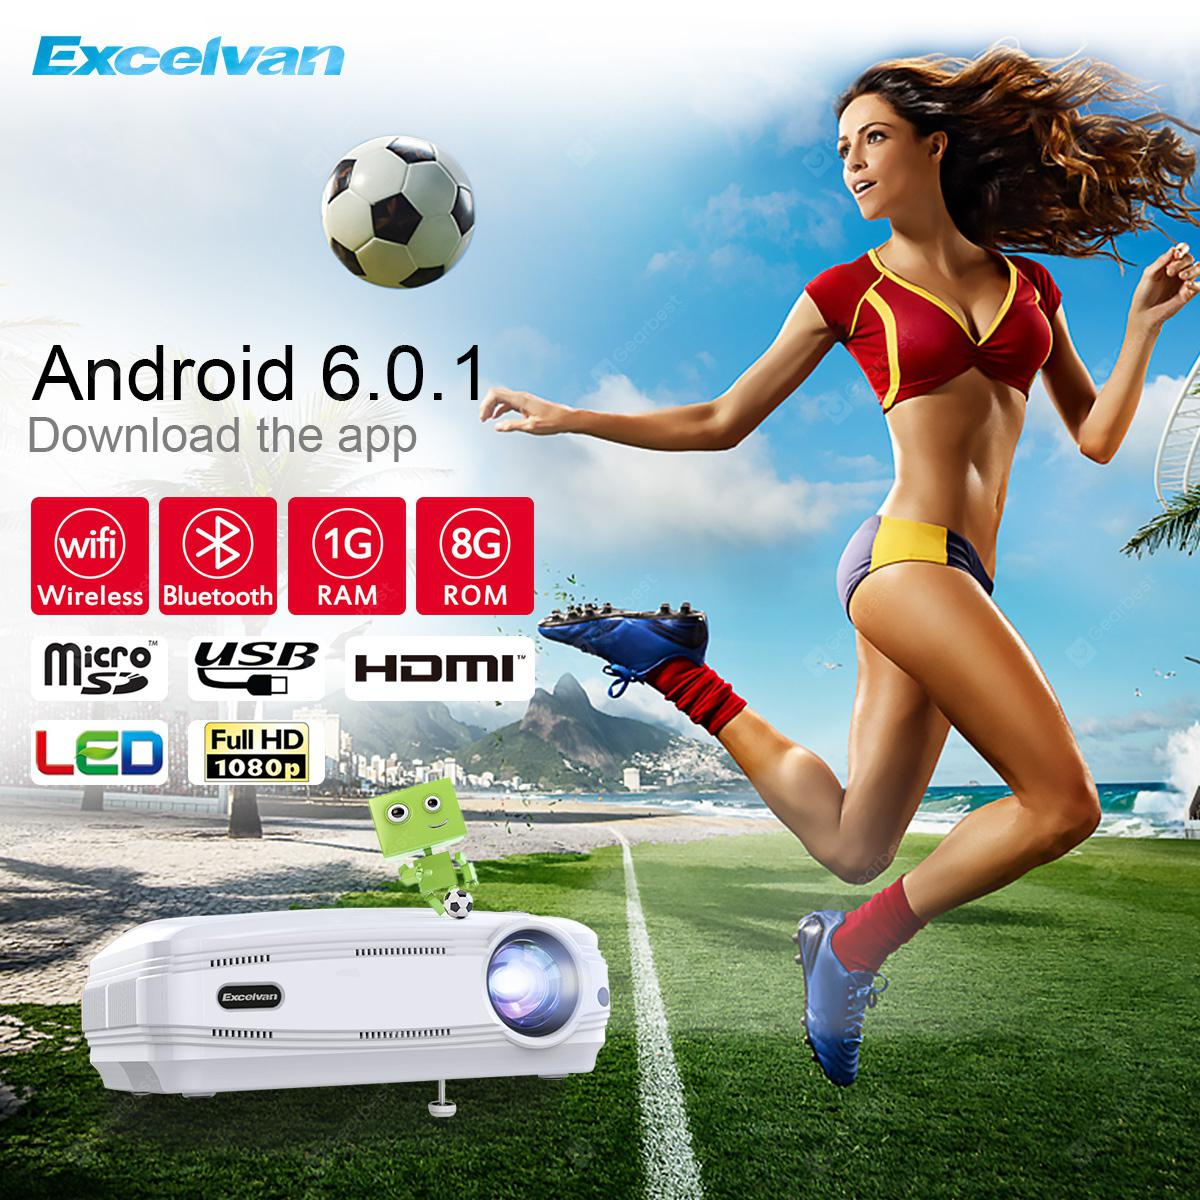 Excelvan BL-59 6.0.1 3200 Android lumenů * 1280 768 200 Inch Multimediální projektor Support Red & Blue 3 1080P WiFi + Bluetooth 1G 8G ATV Outdoor Movie Game pro domácí kino - EU WHITE